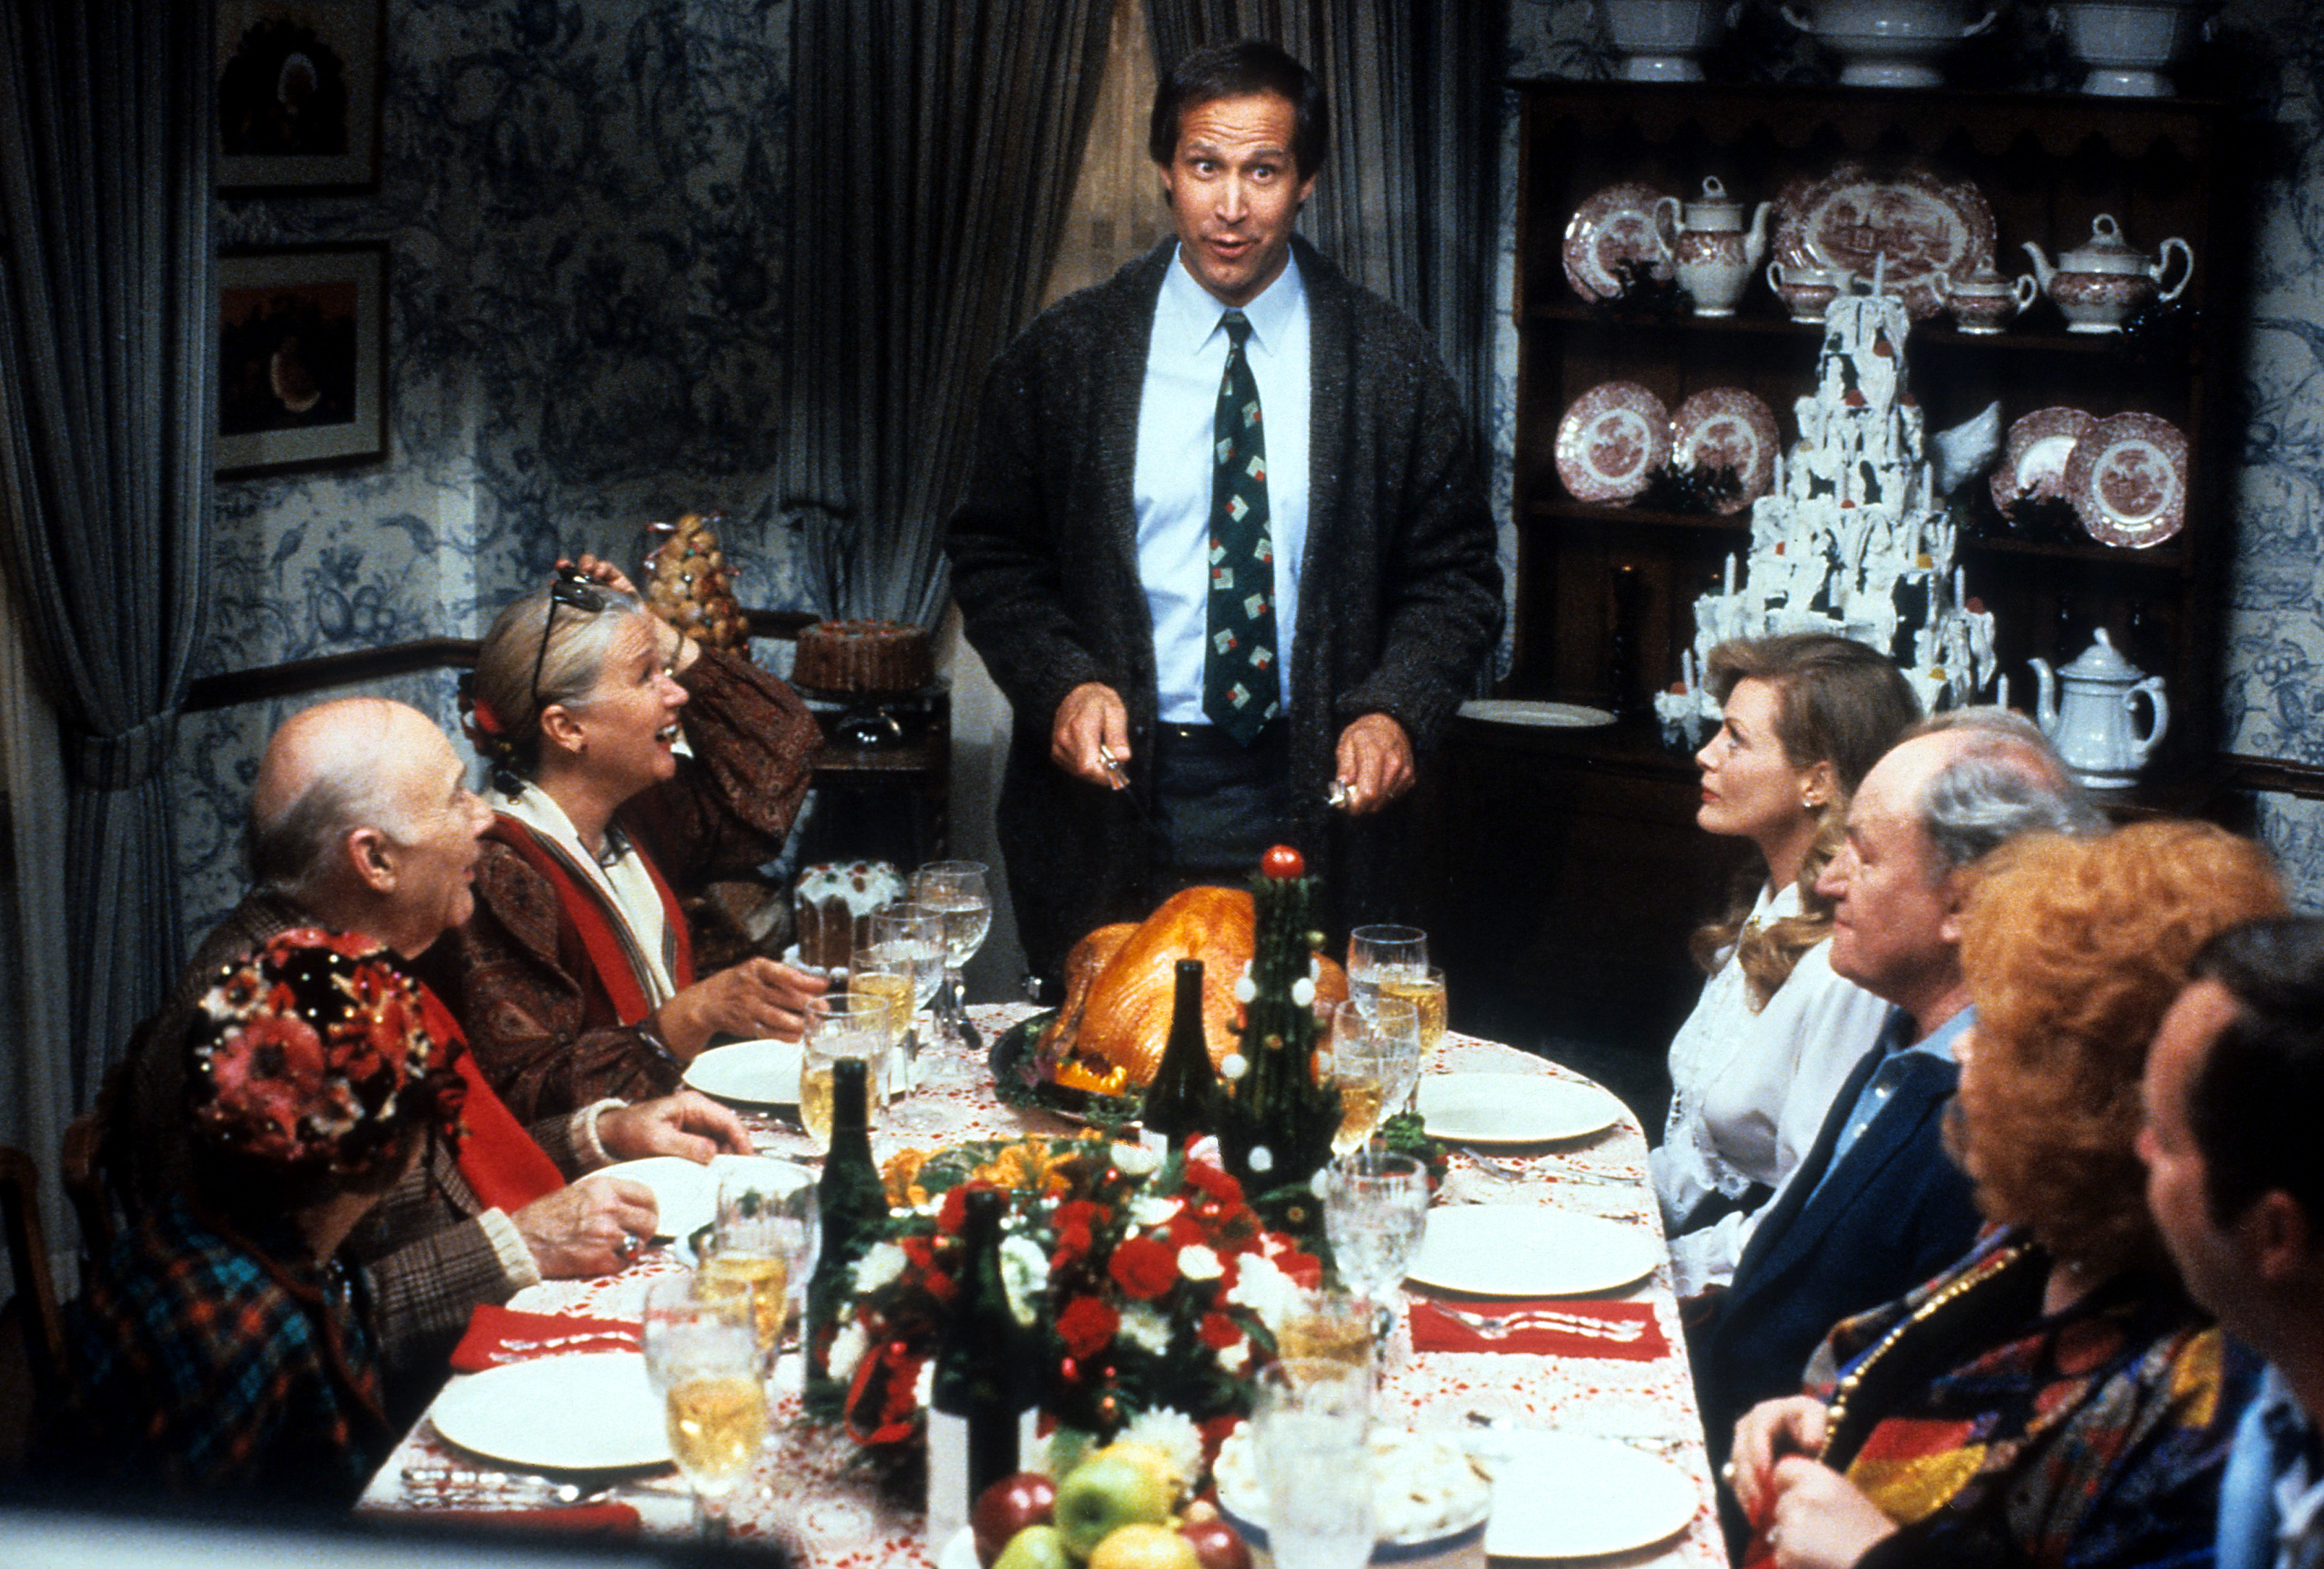 national lampoons christmas vacation 1989 photo gallery imdb - Cast Of National Lampoon Christmas Vacation